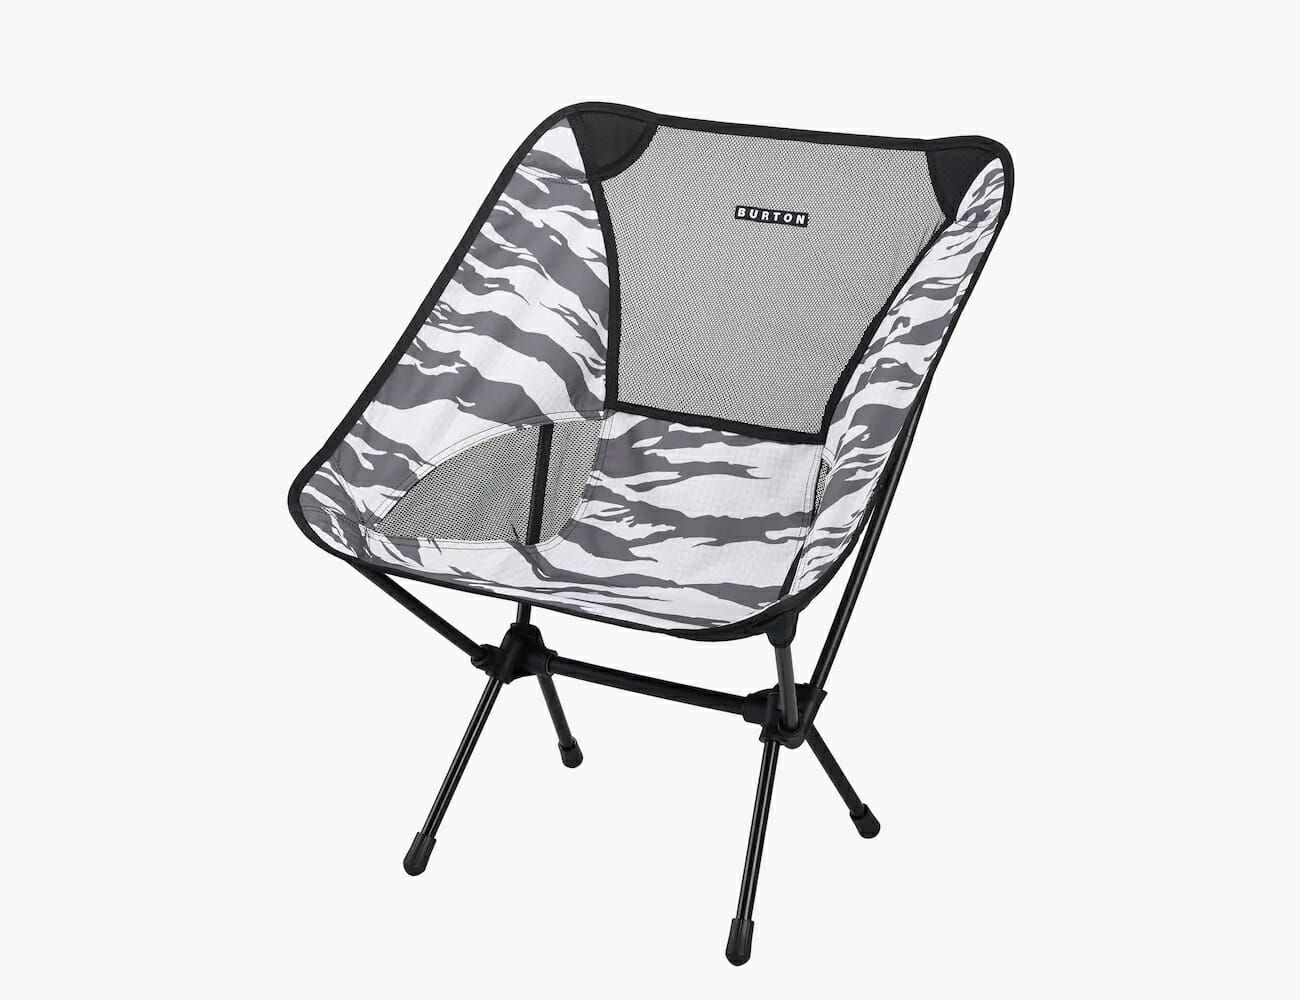 Sensational The Best Camping Chairs Available For Every Camper Gear Spiritservingveterans Wood Chair Design Ideas Spiritservingveteransorg